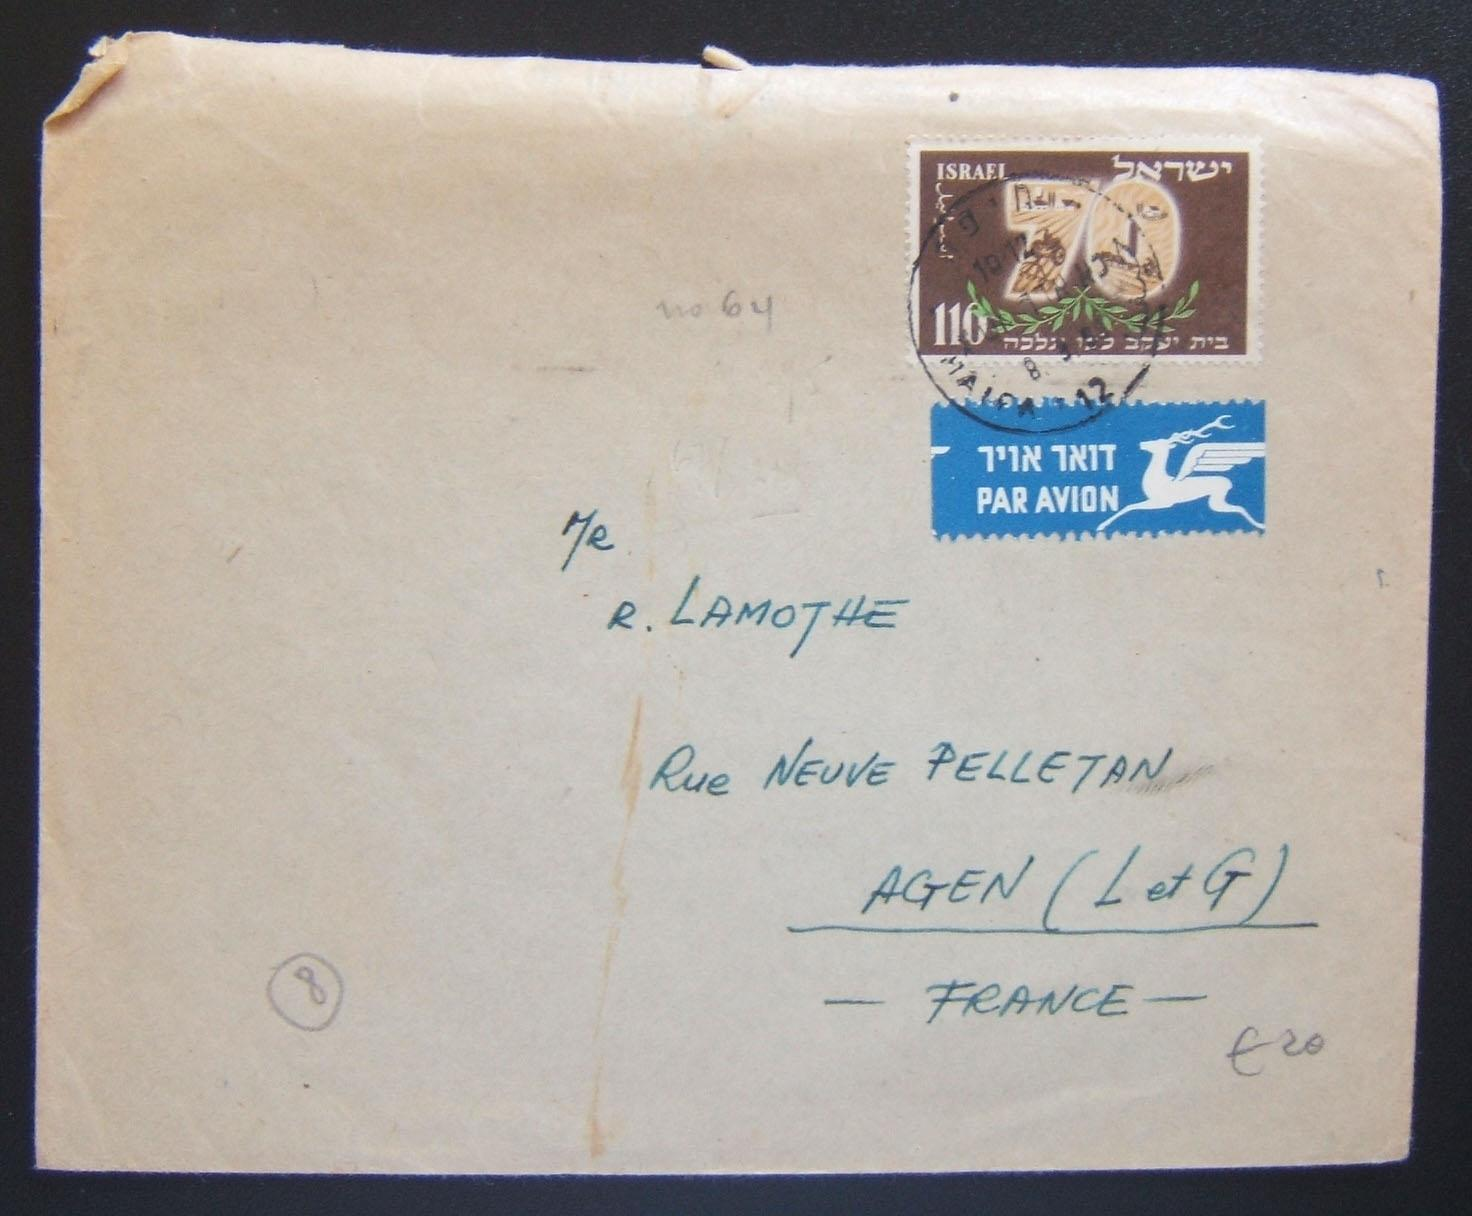 1953 'Bilu' franked airmail: 8-3-1953 comm cv ex HAIFA to FRANCE franked 110pr at FA-3a period rate to Europe using Ba78; with